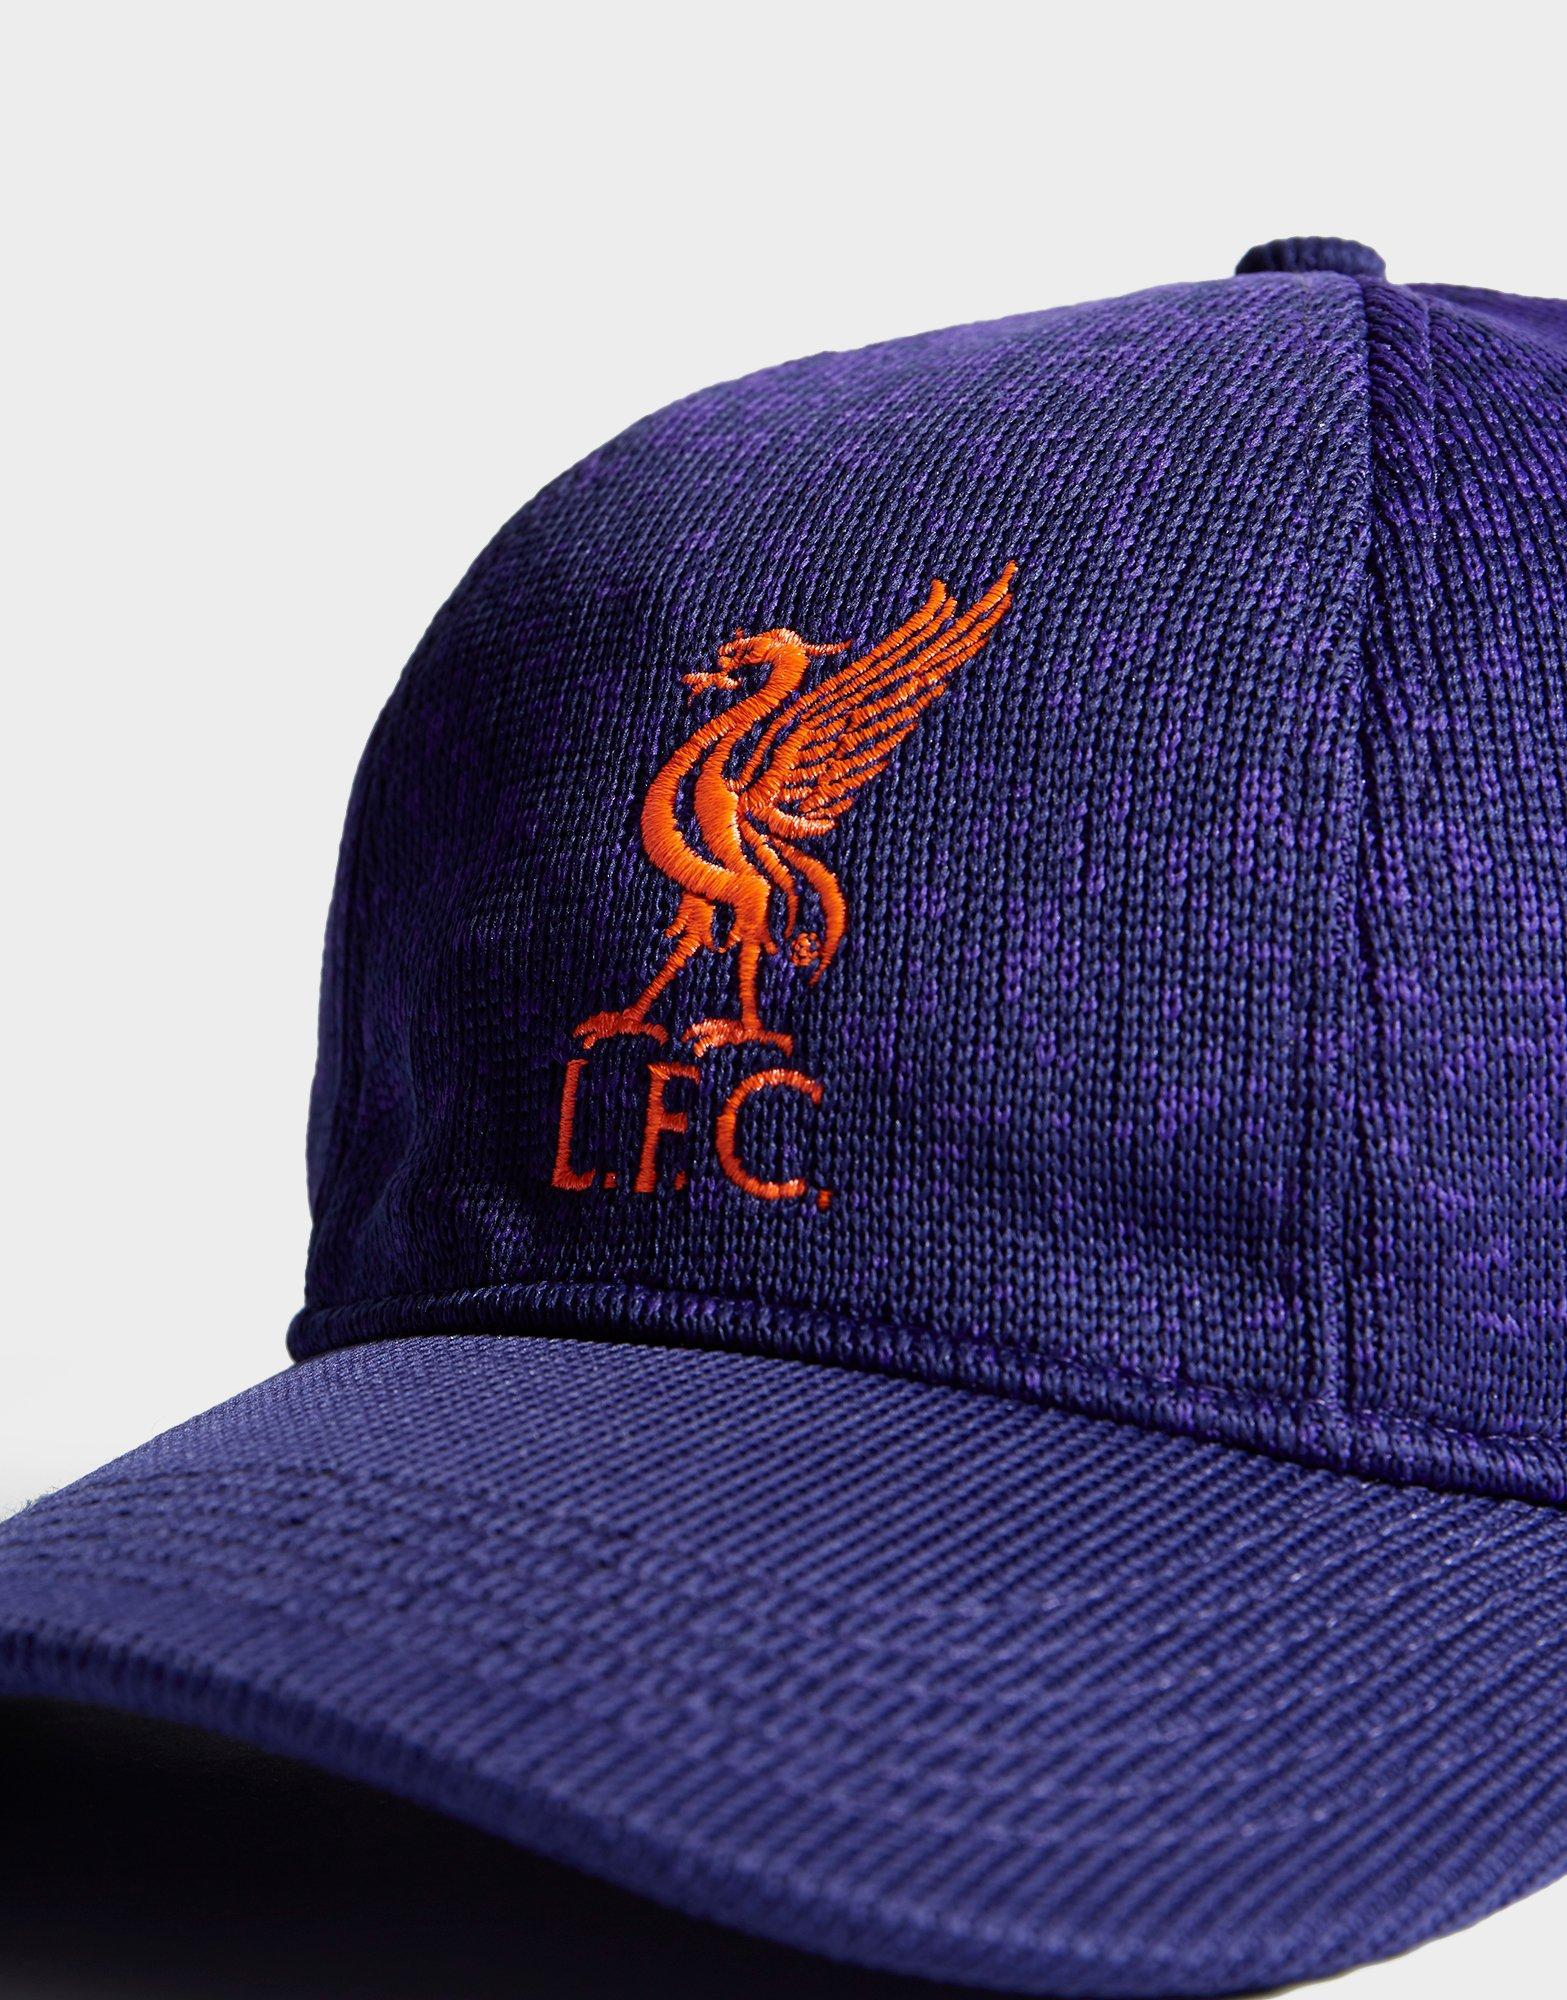 4d068c4e0e5 Lyst - New Balance Liverpool Fc Klopp Cap in Purple